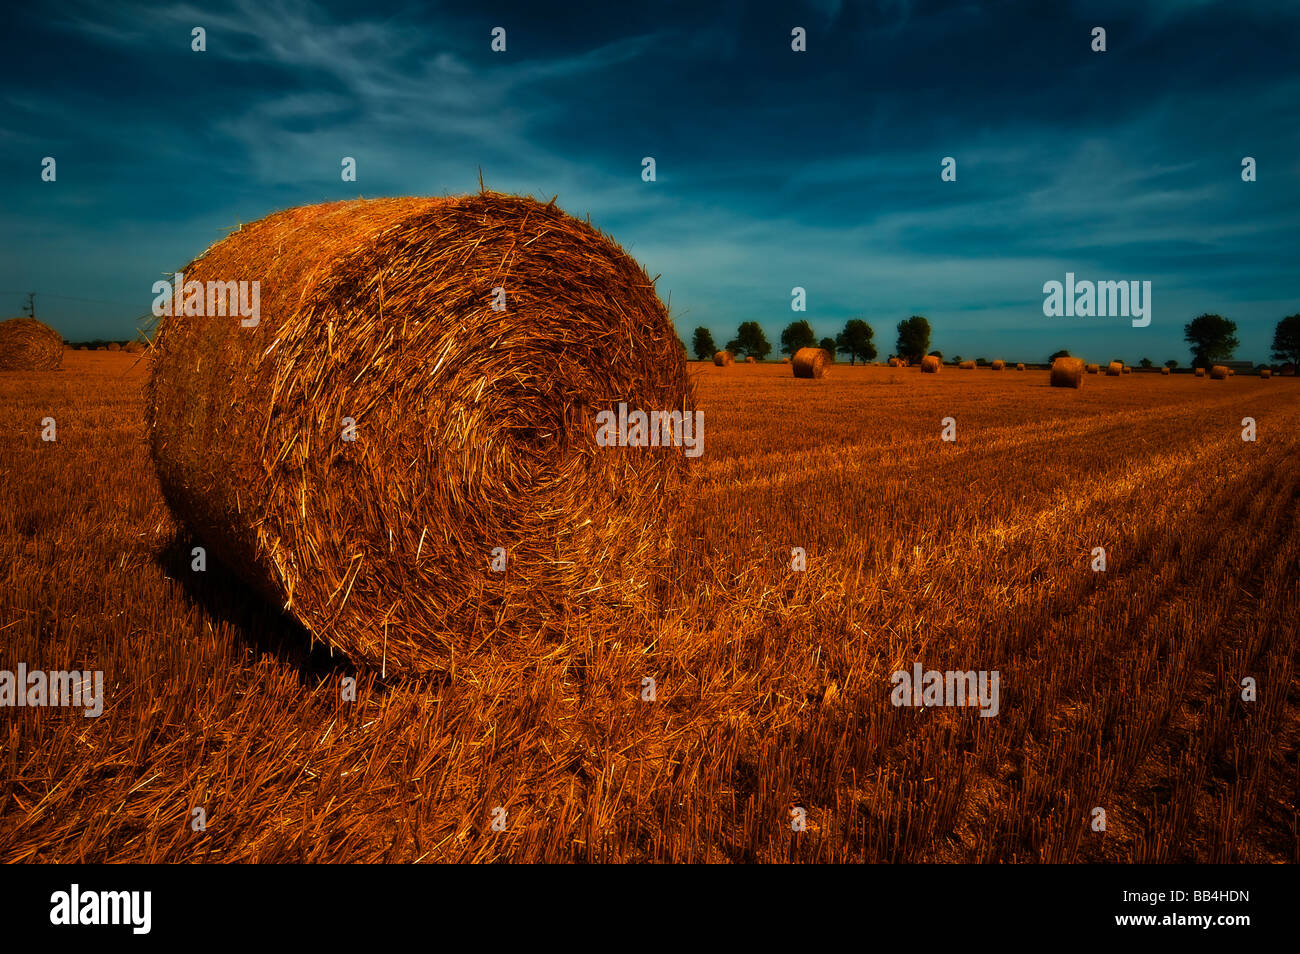 bail hay straw agriculture